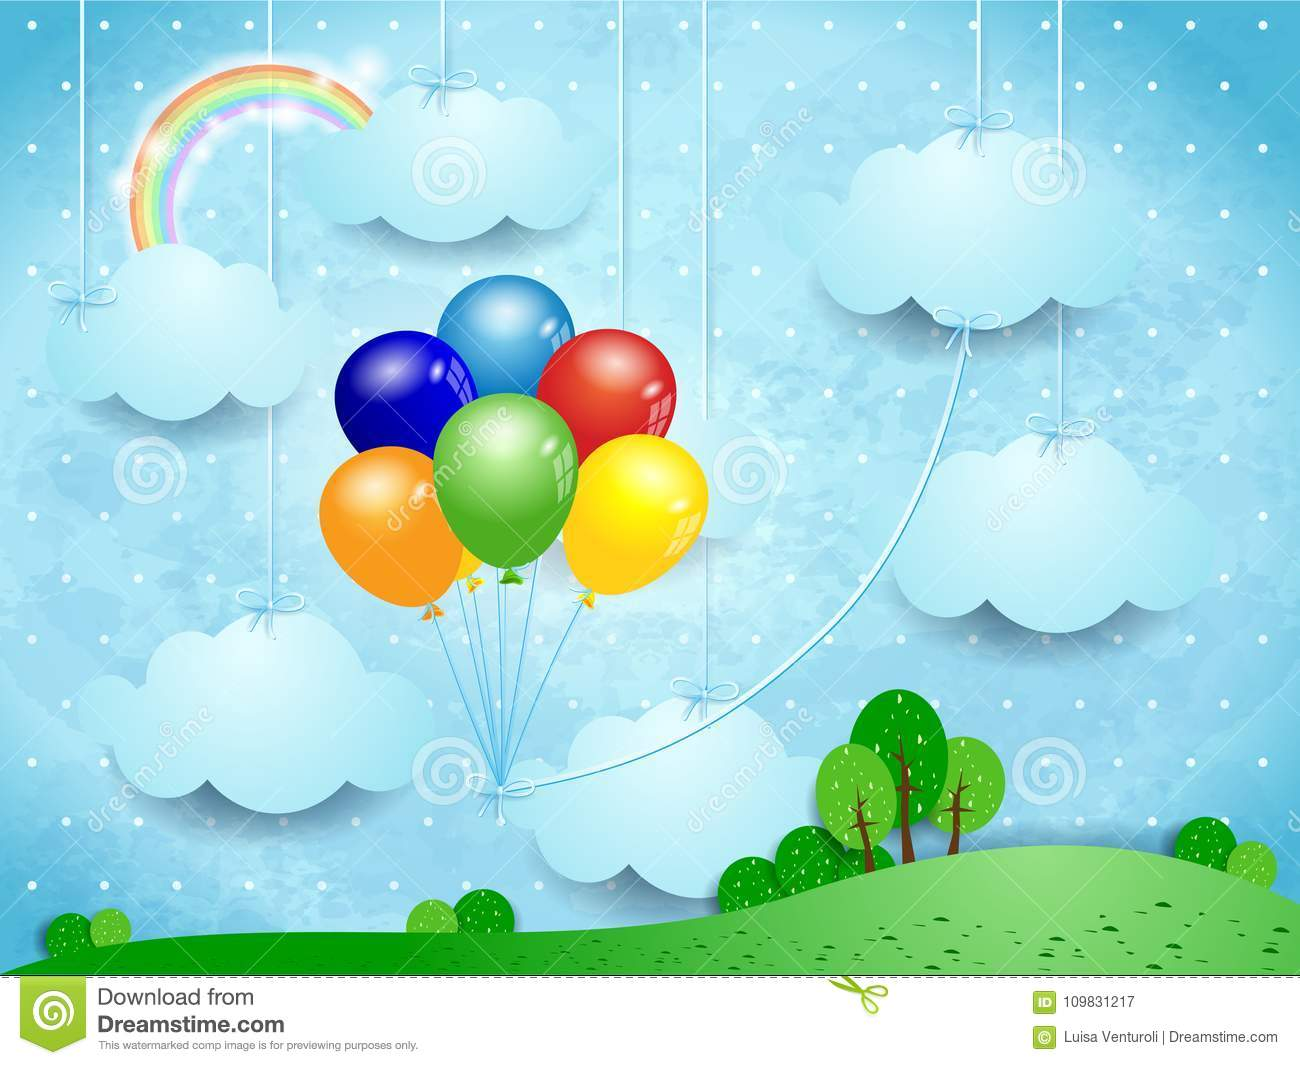 Surreal landscape with hanging clouds and balloons